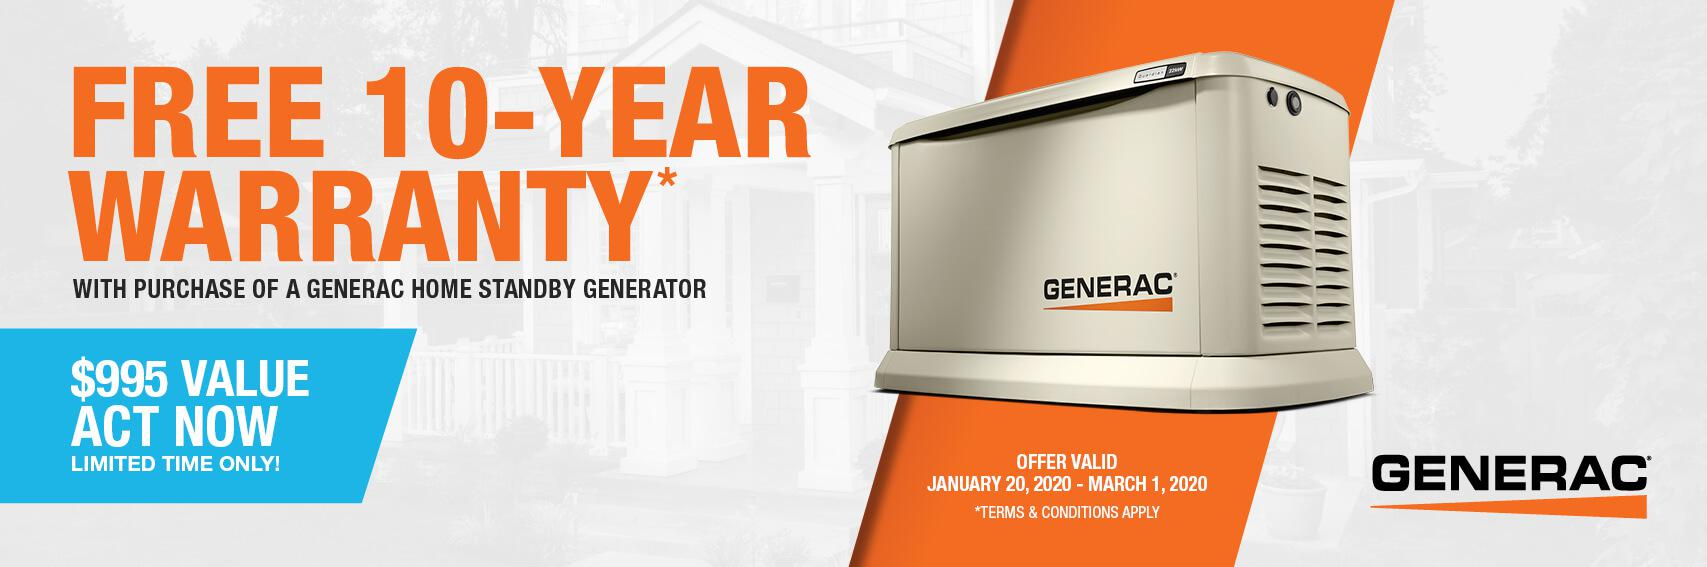 Homestandby Generator Deal | Warranty Offer | Generac Dealer | Shelley, ID